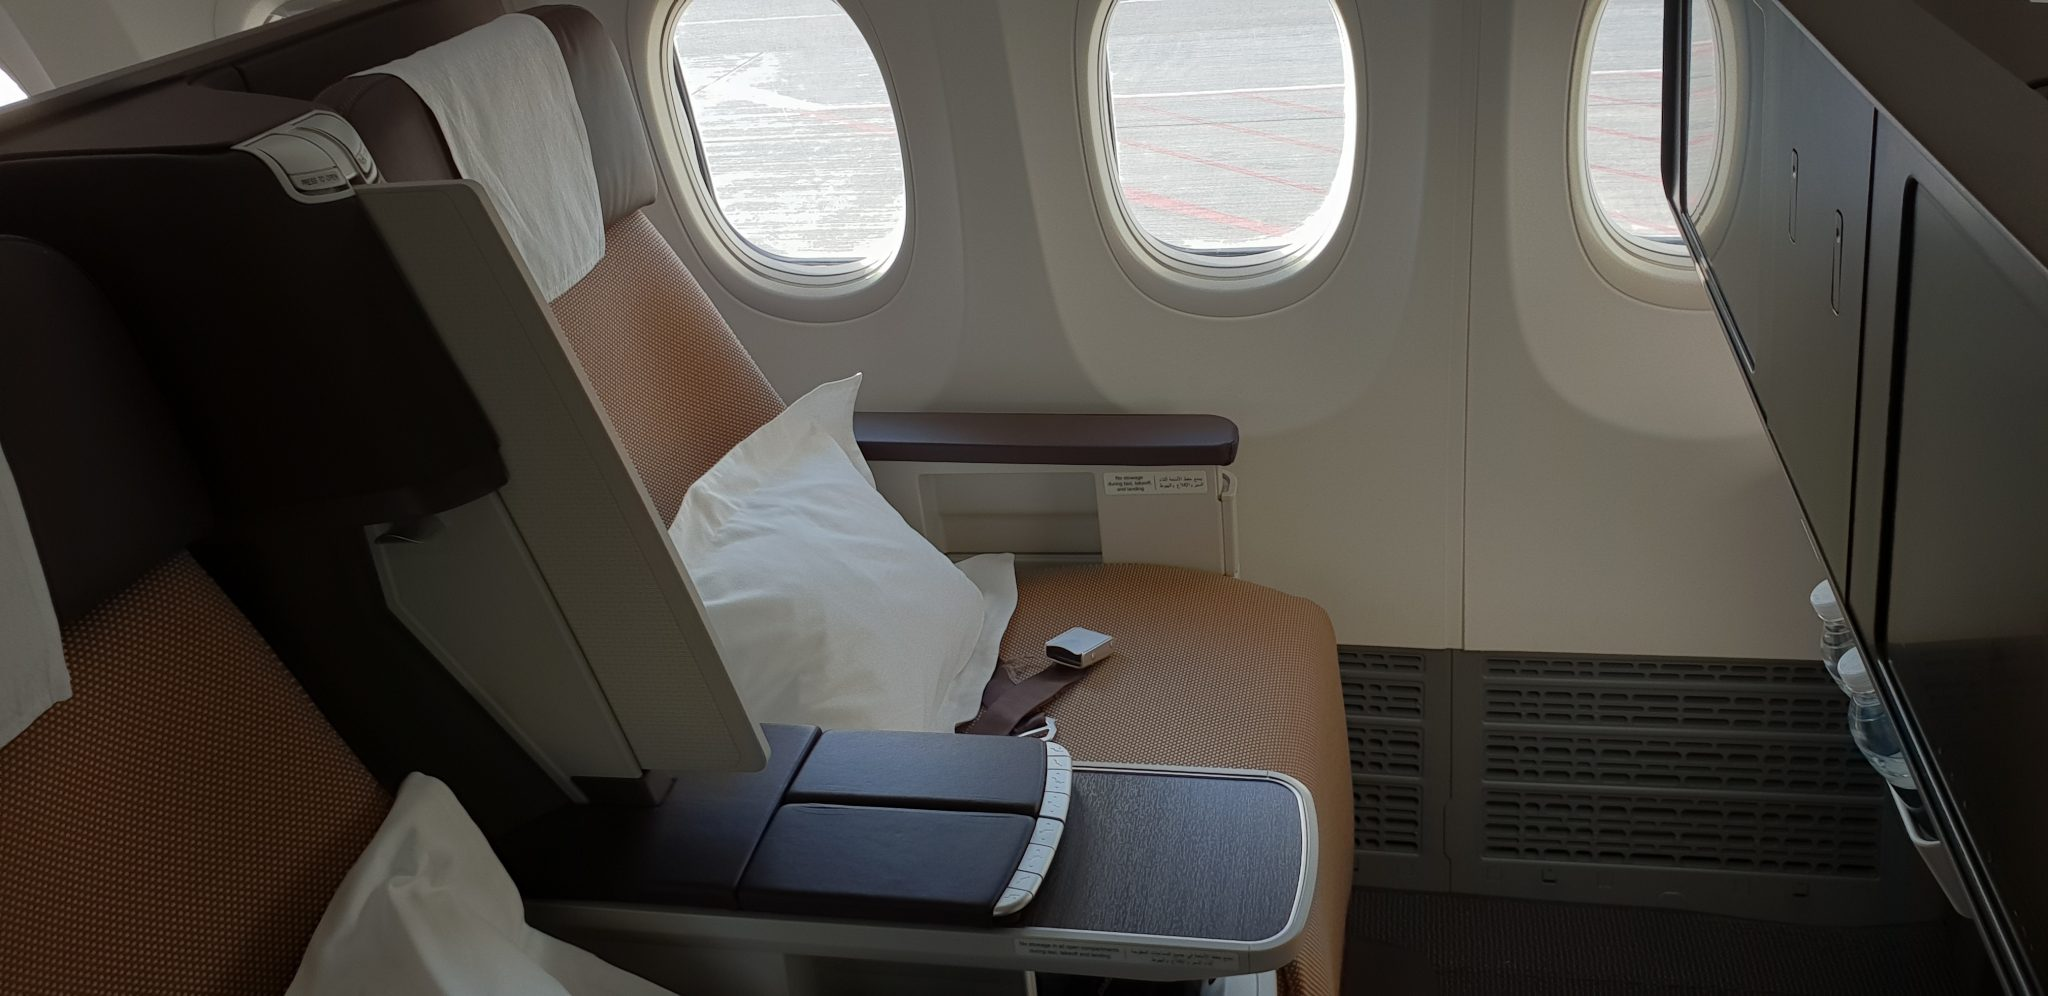 Emirates Business Class Blanket Sealed Not First Class Airlines